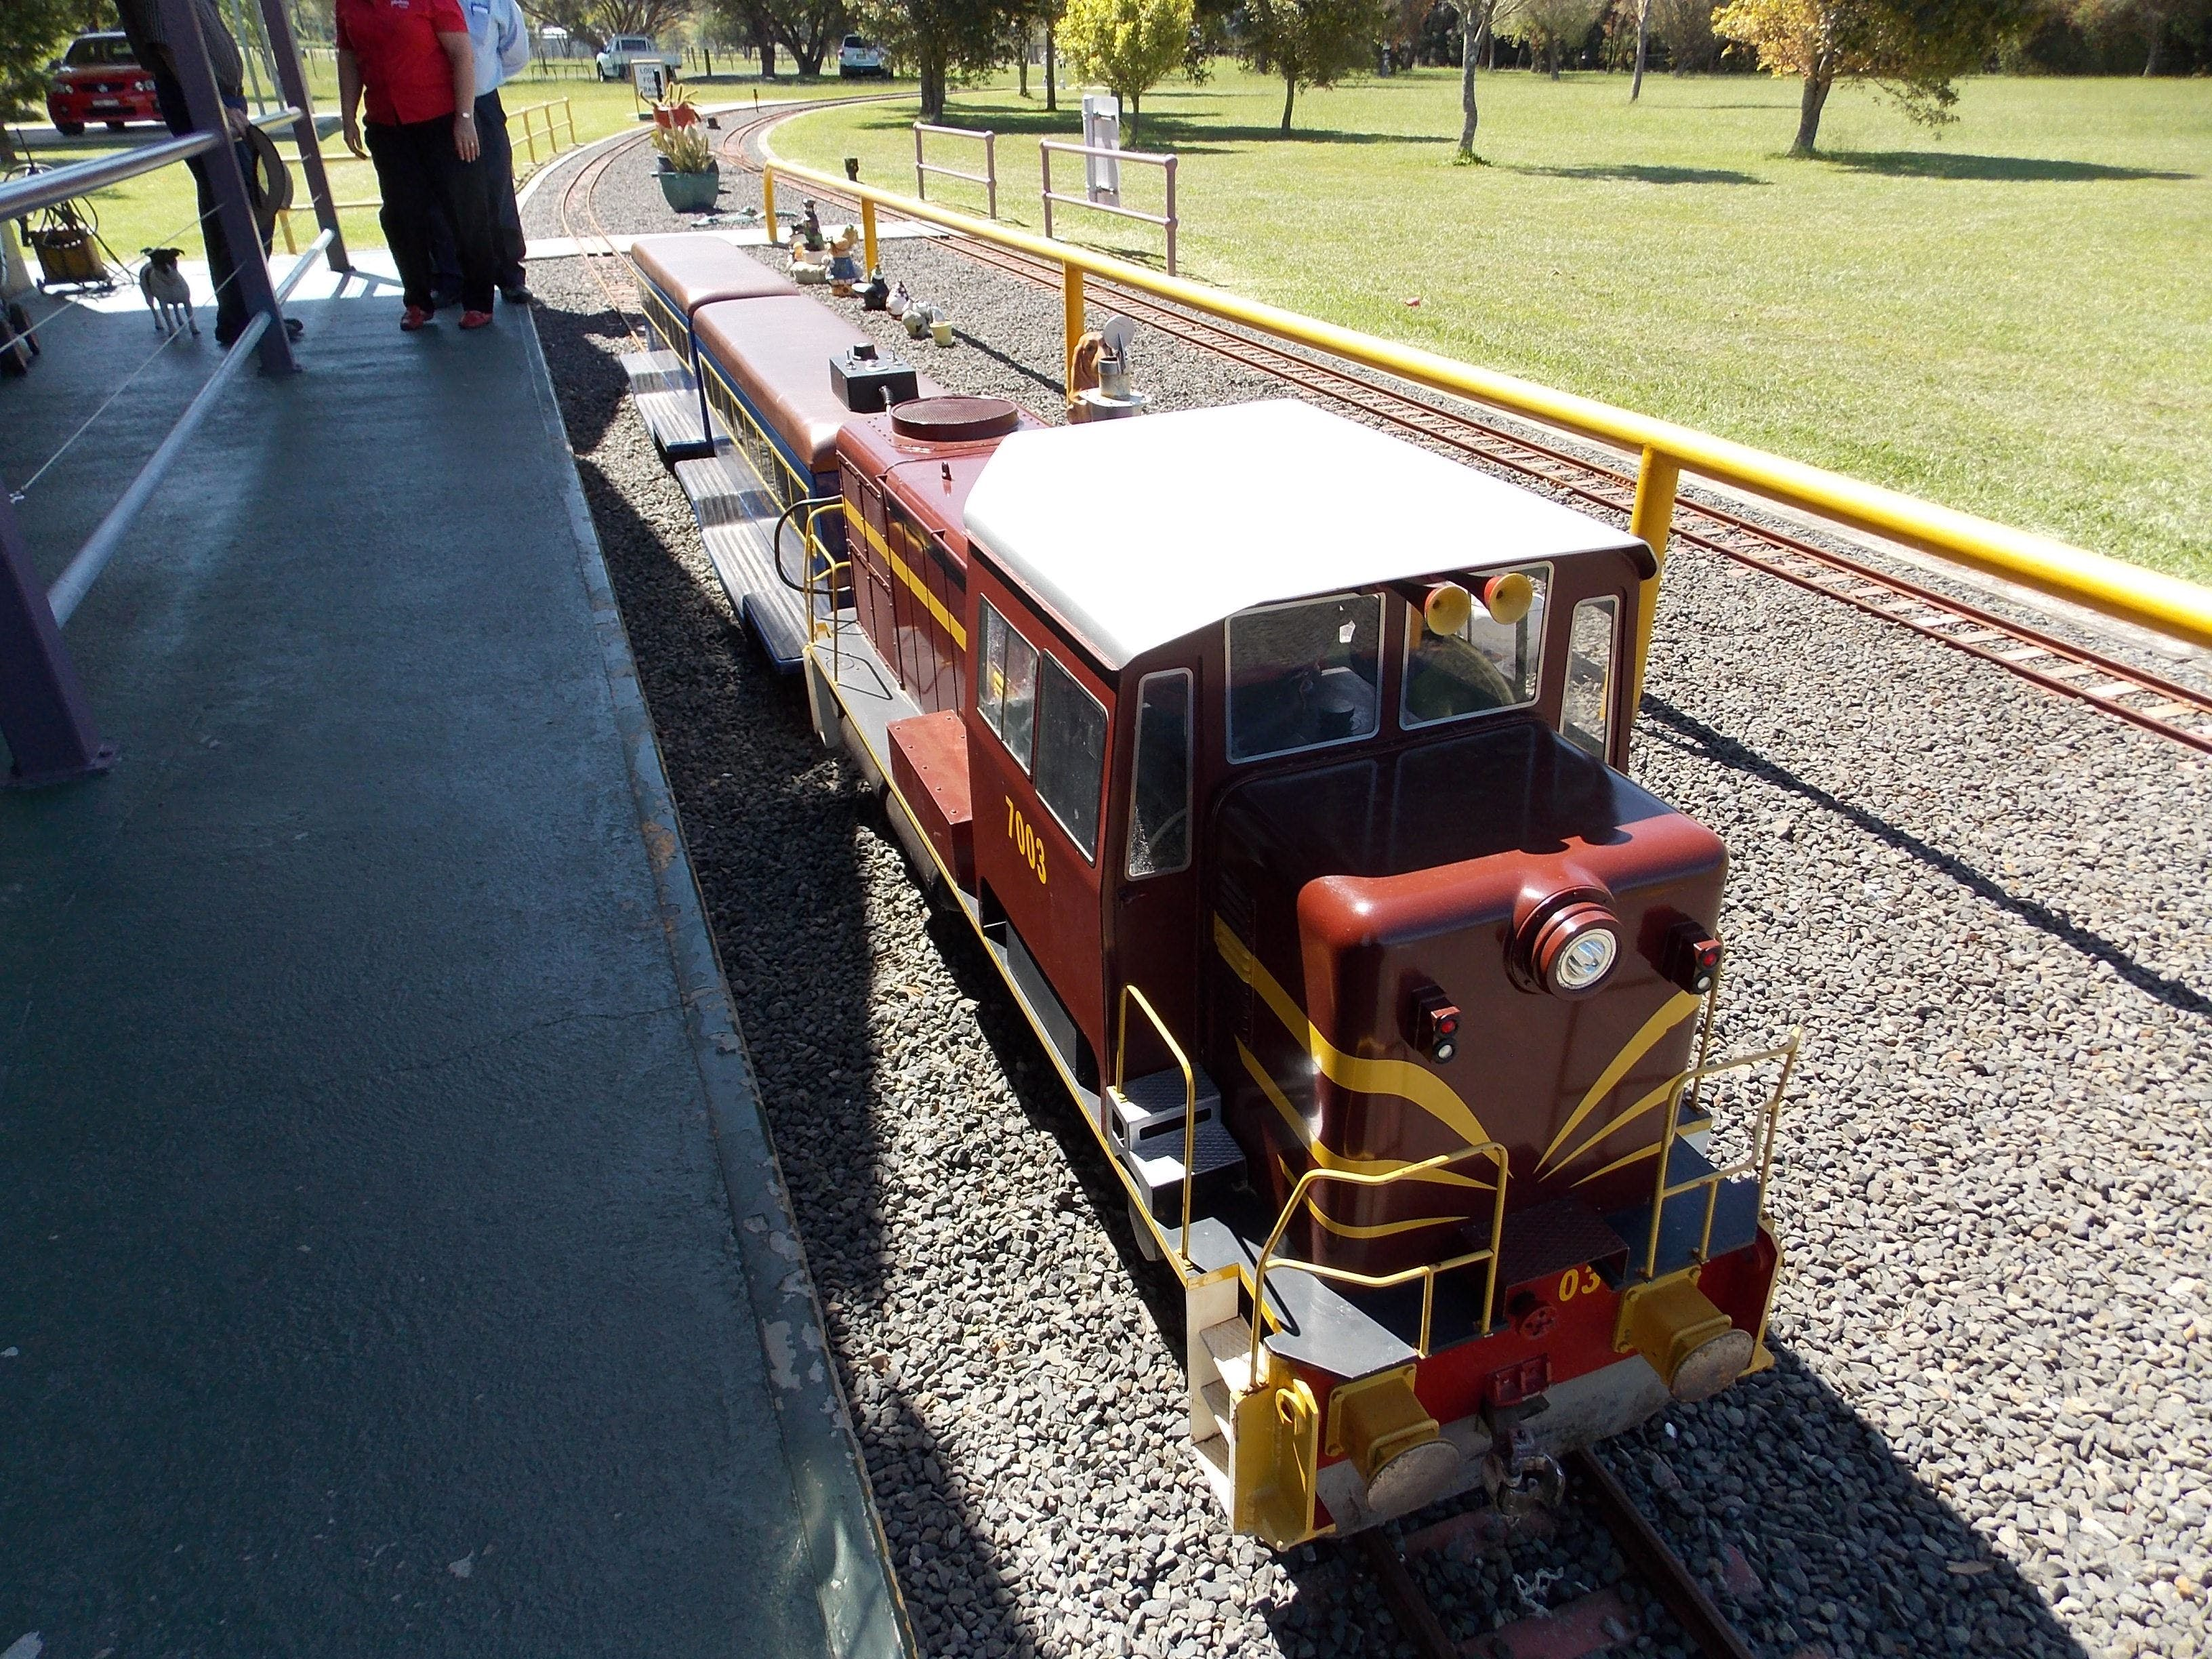 Penwood Miniature Railway - Sydney Tourism